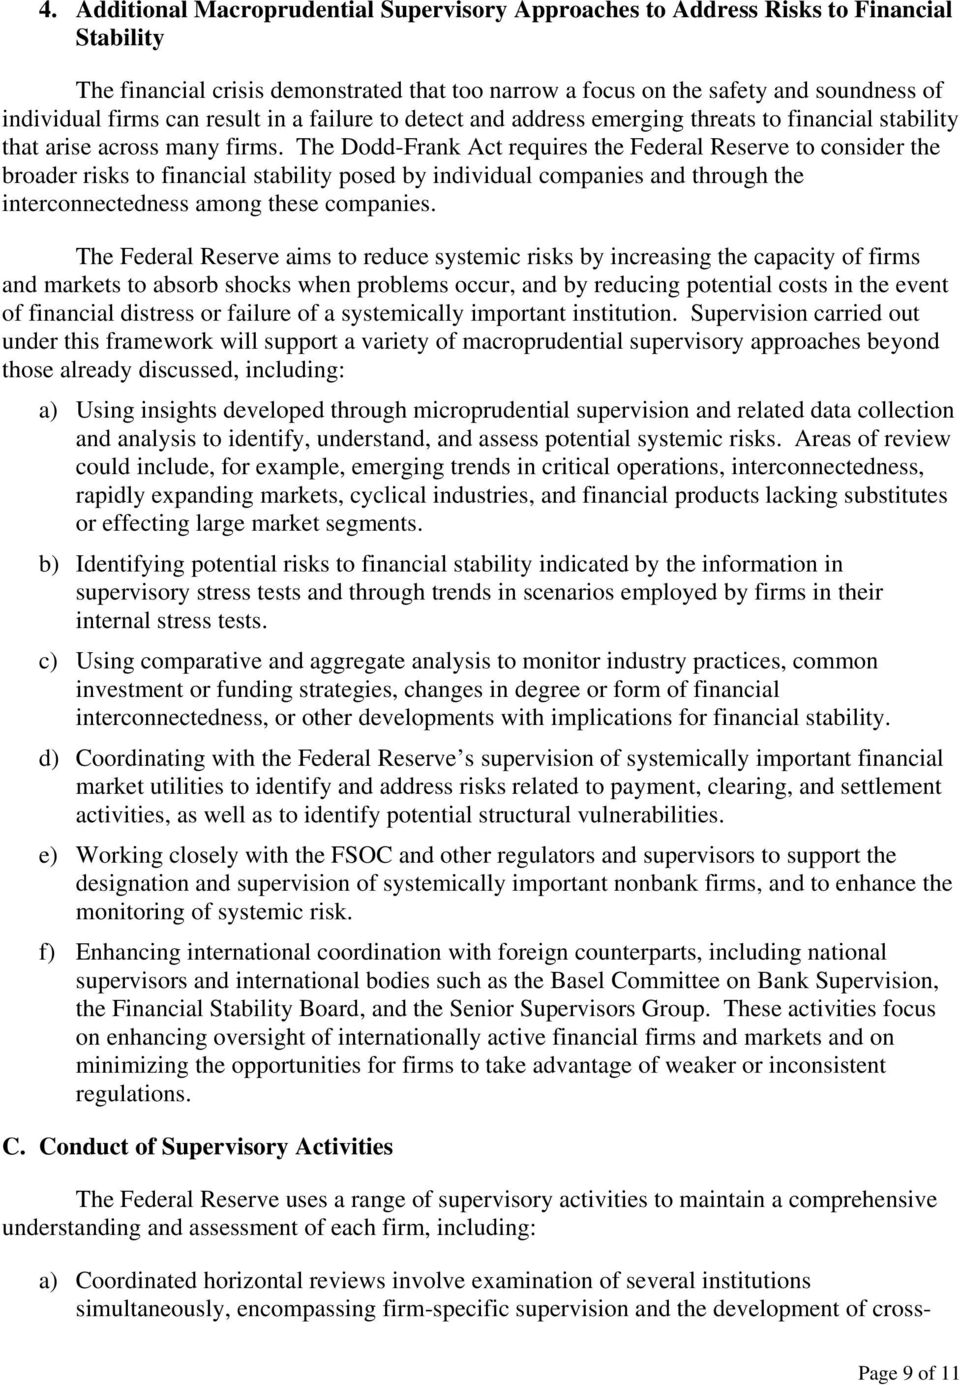 BOARD OF GOVERNORS FEDERAL RESERVE SYSTEM - PDF